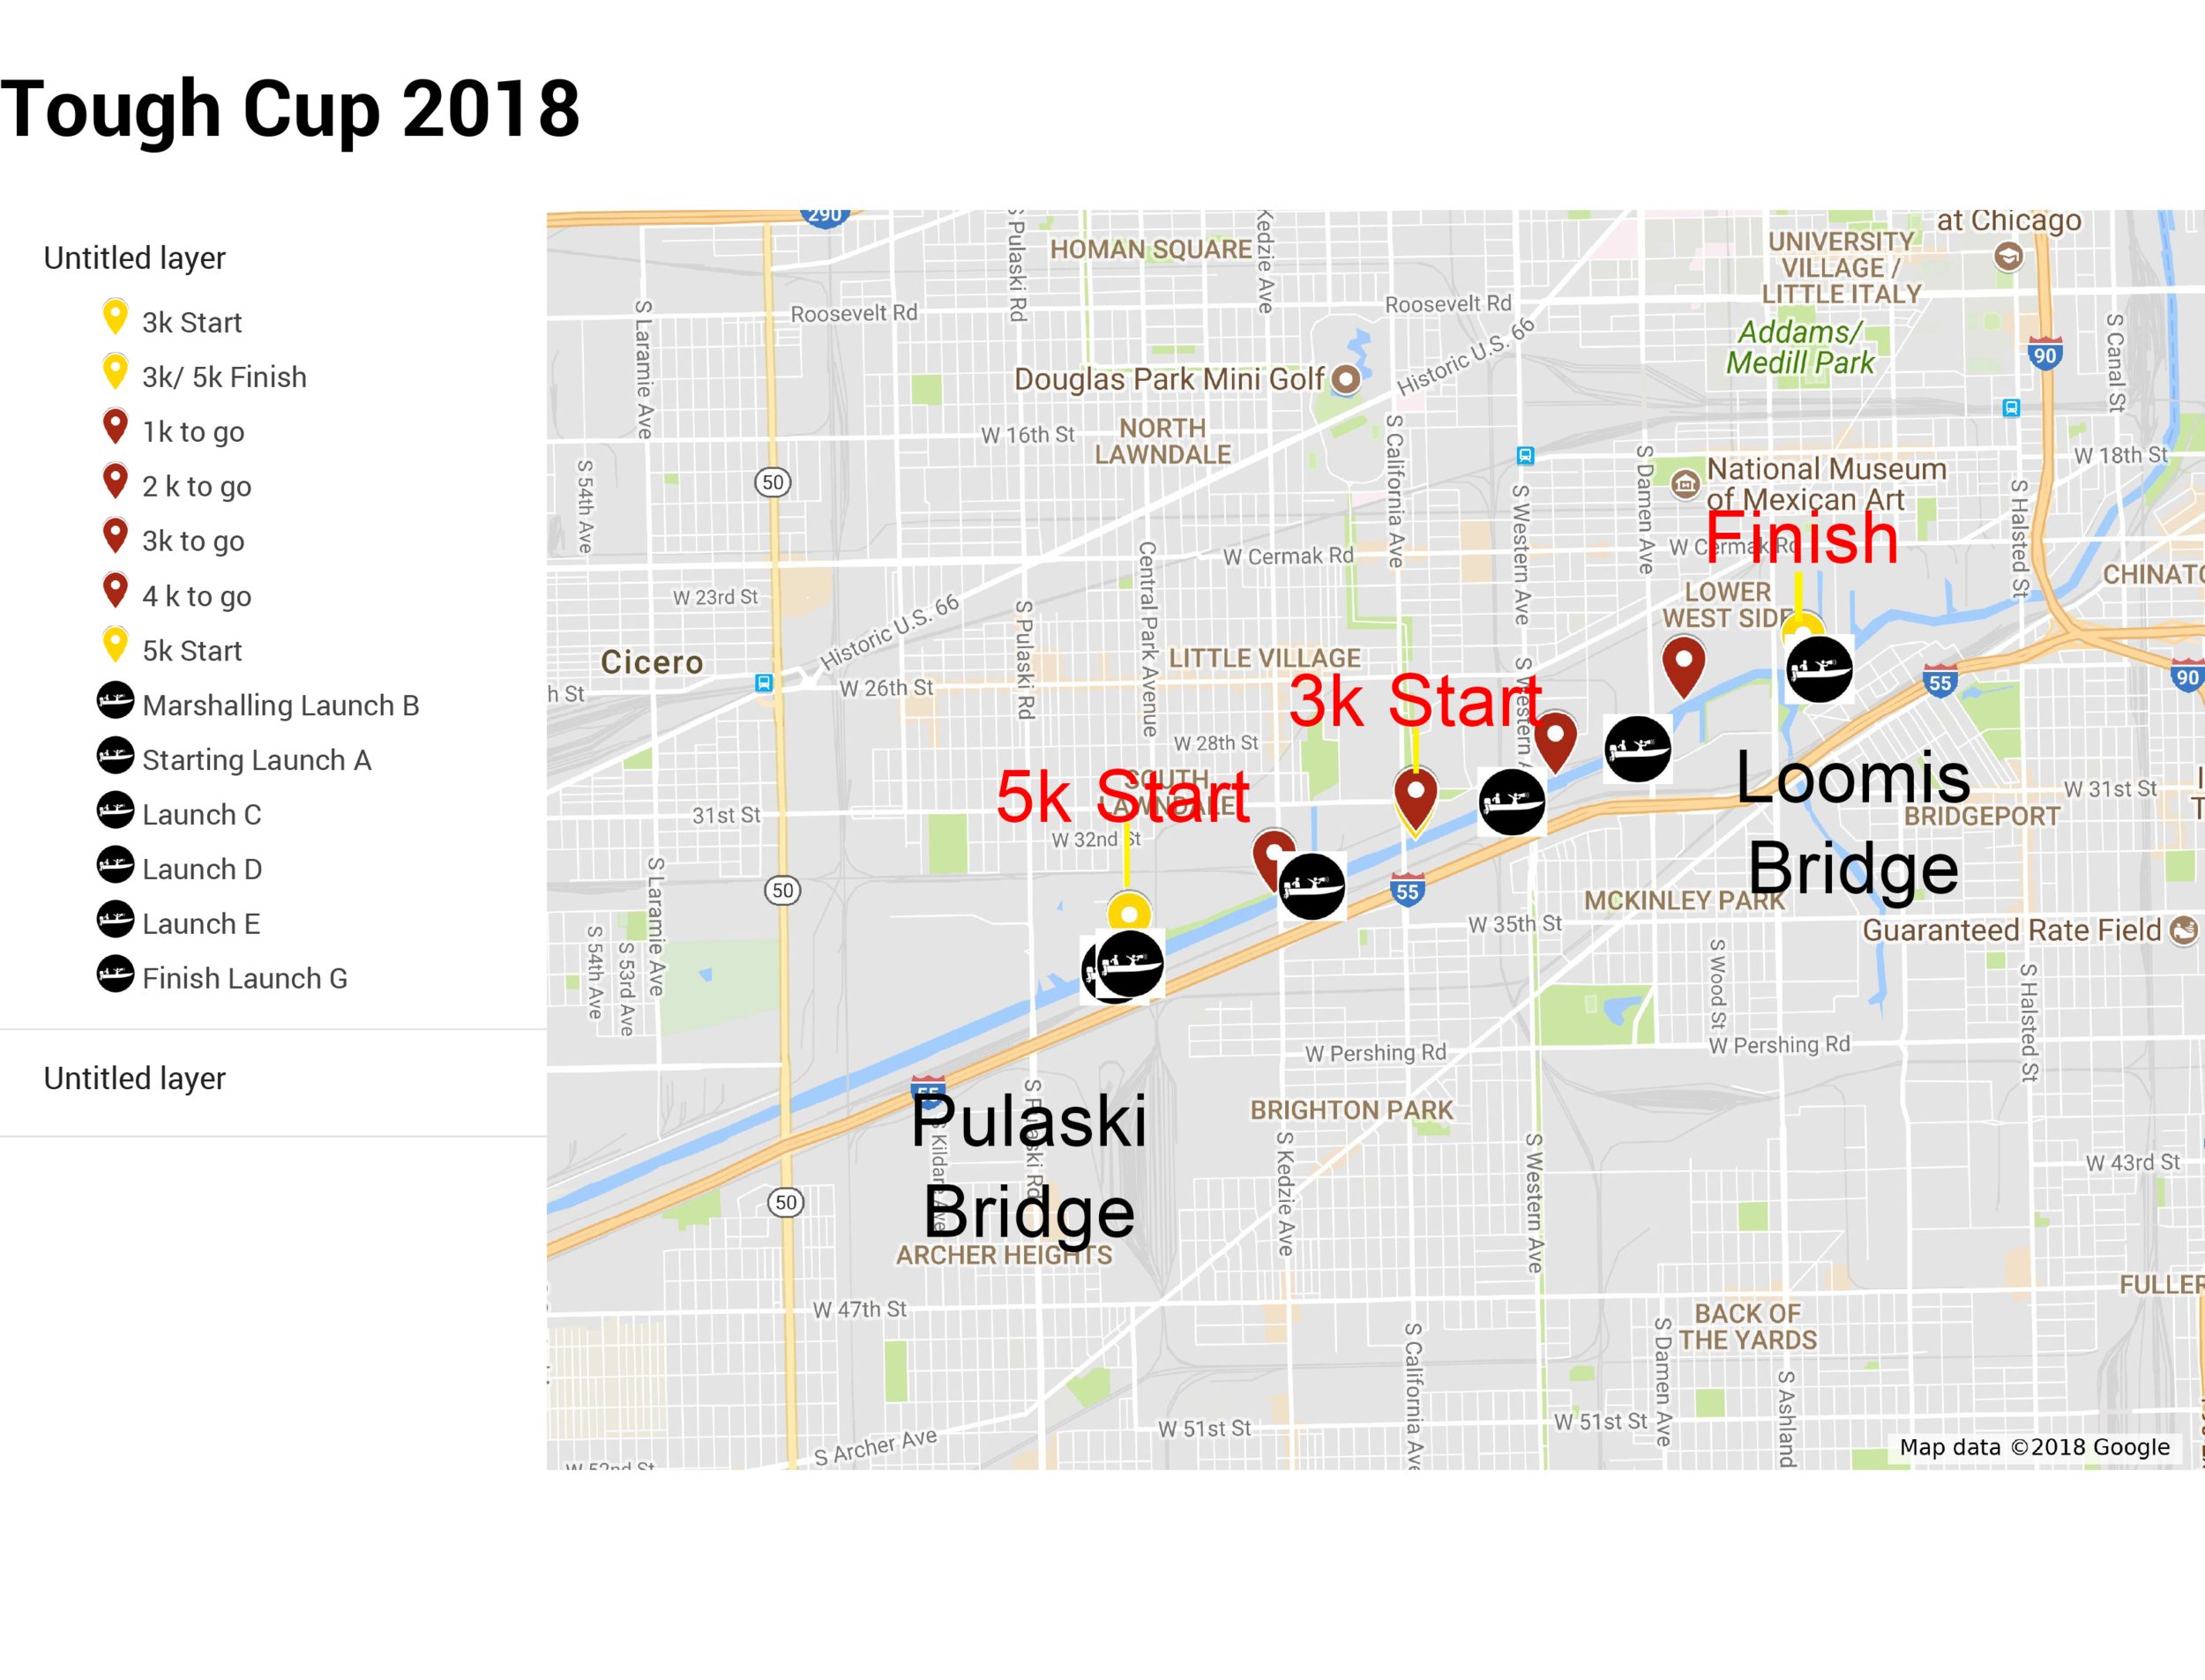 Tough Cup Course map